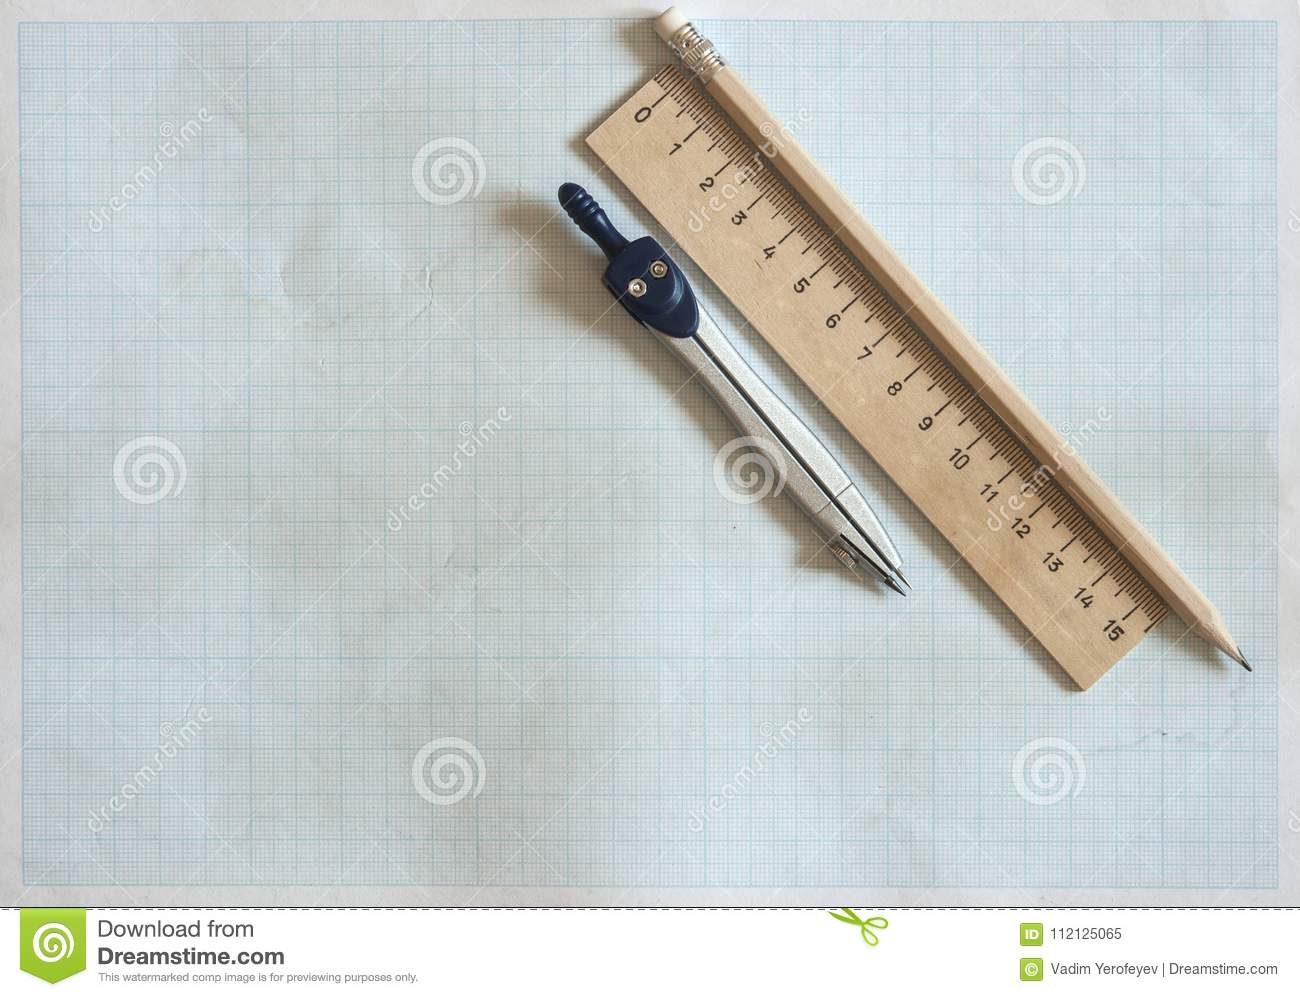 pencil, compass and rulers on graph paper background stock image